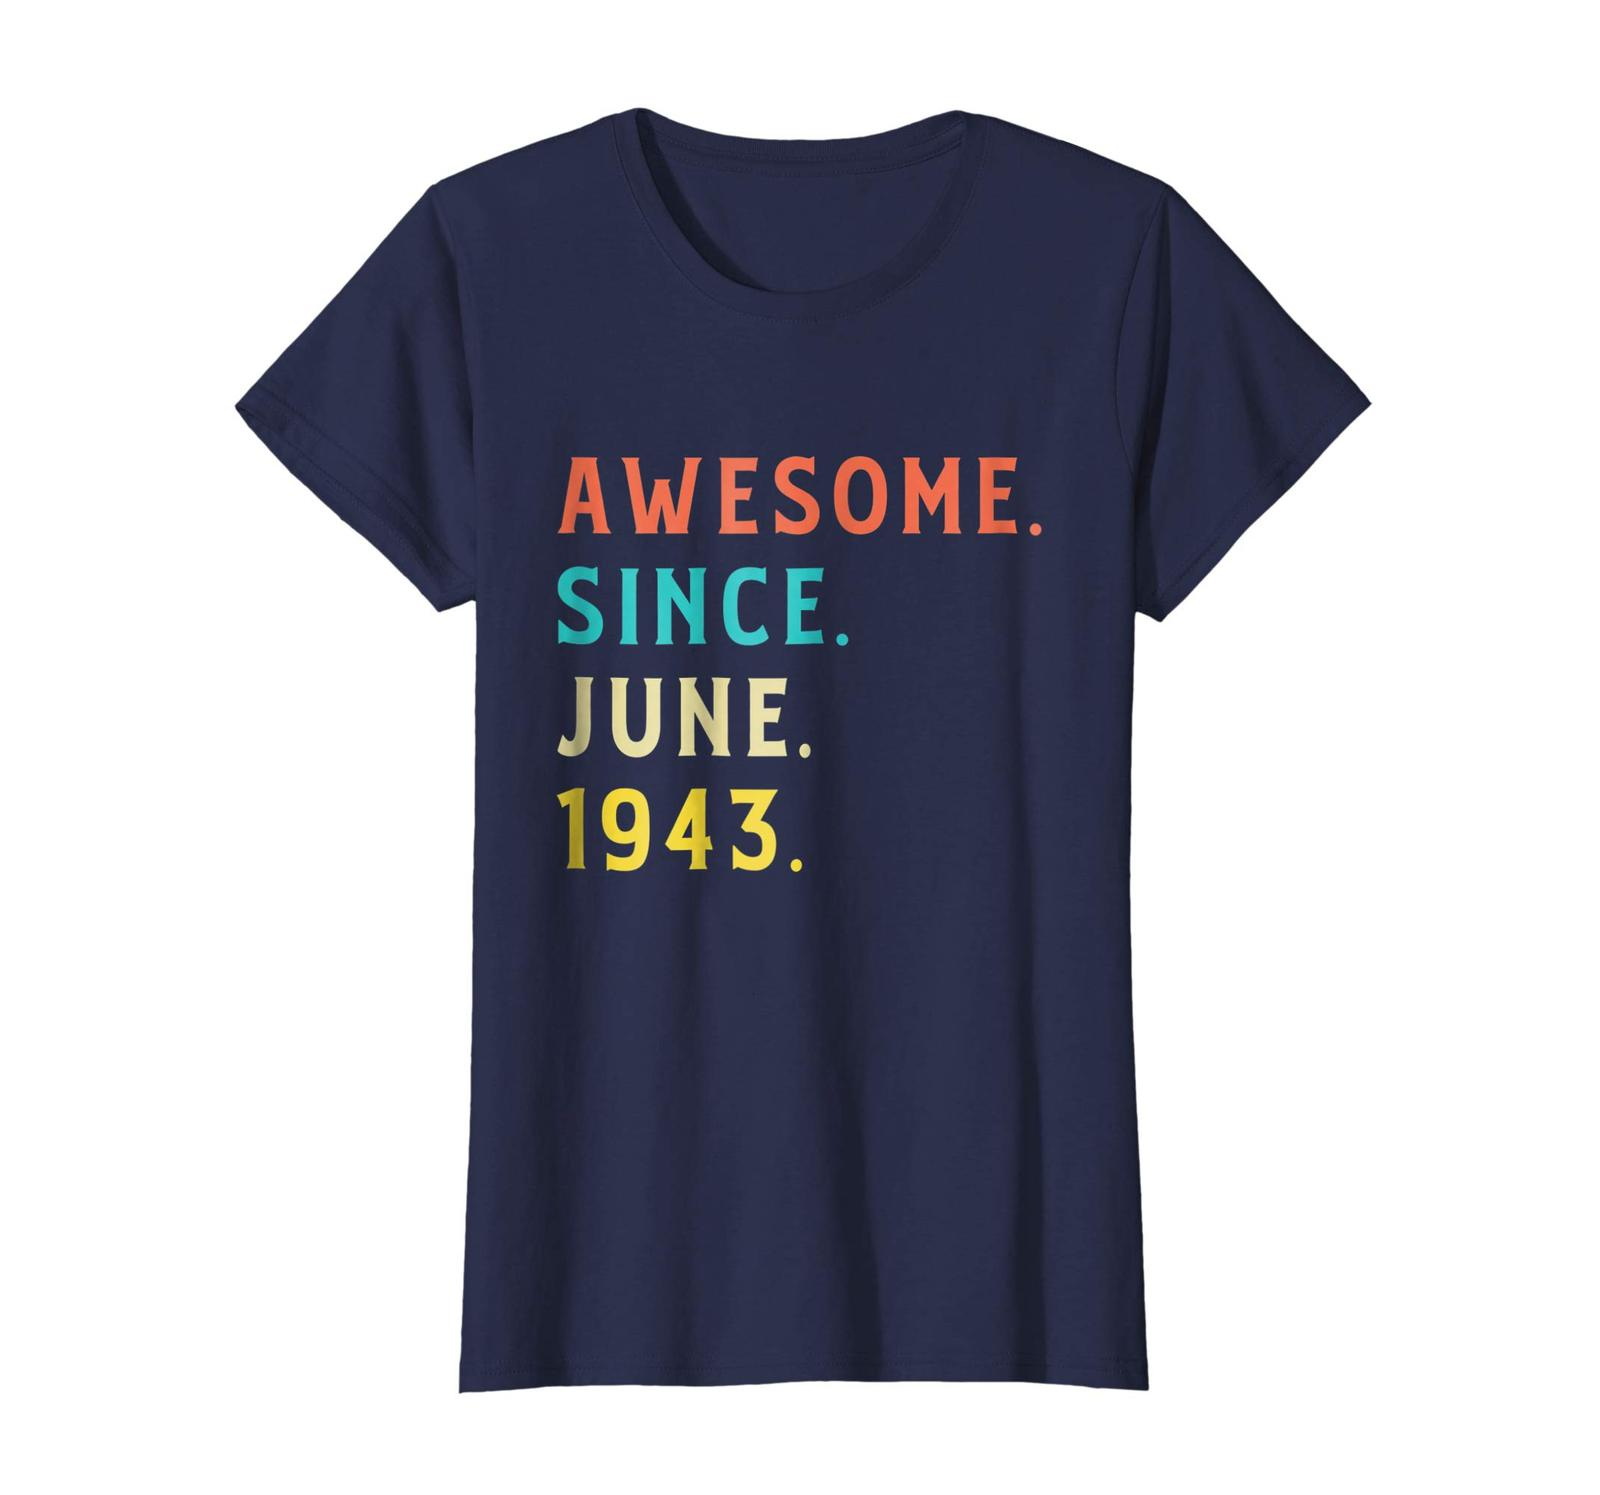 Dad Shirts - Vintage Awesome Since June 1943 Shirt Fun 75th Birthday Gift Wowen image 4